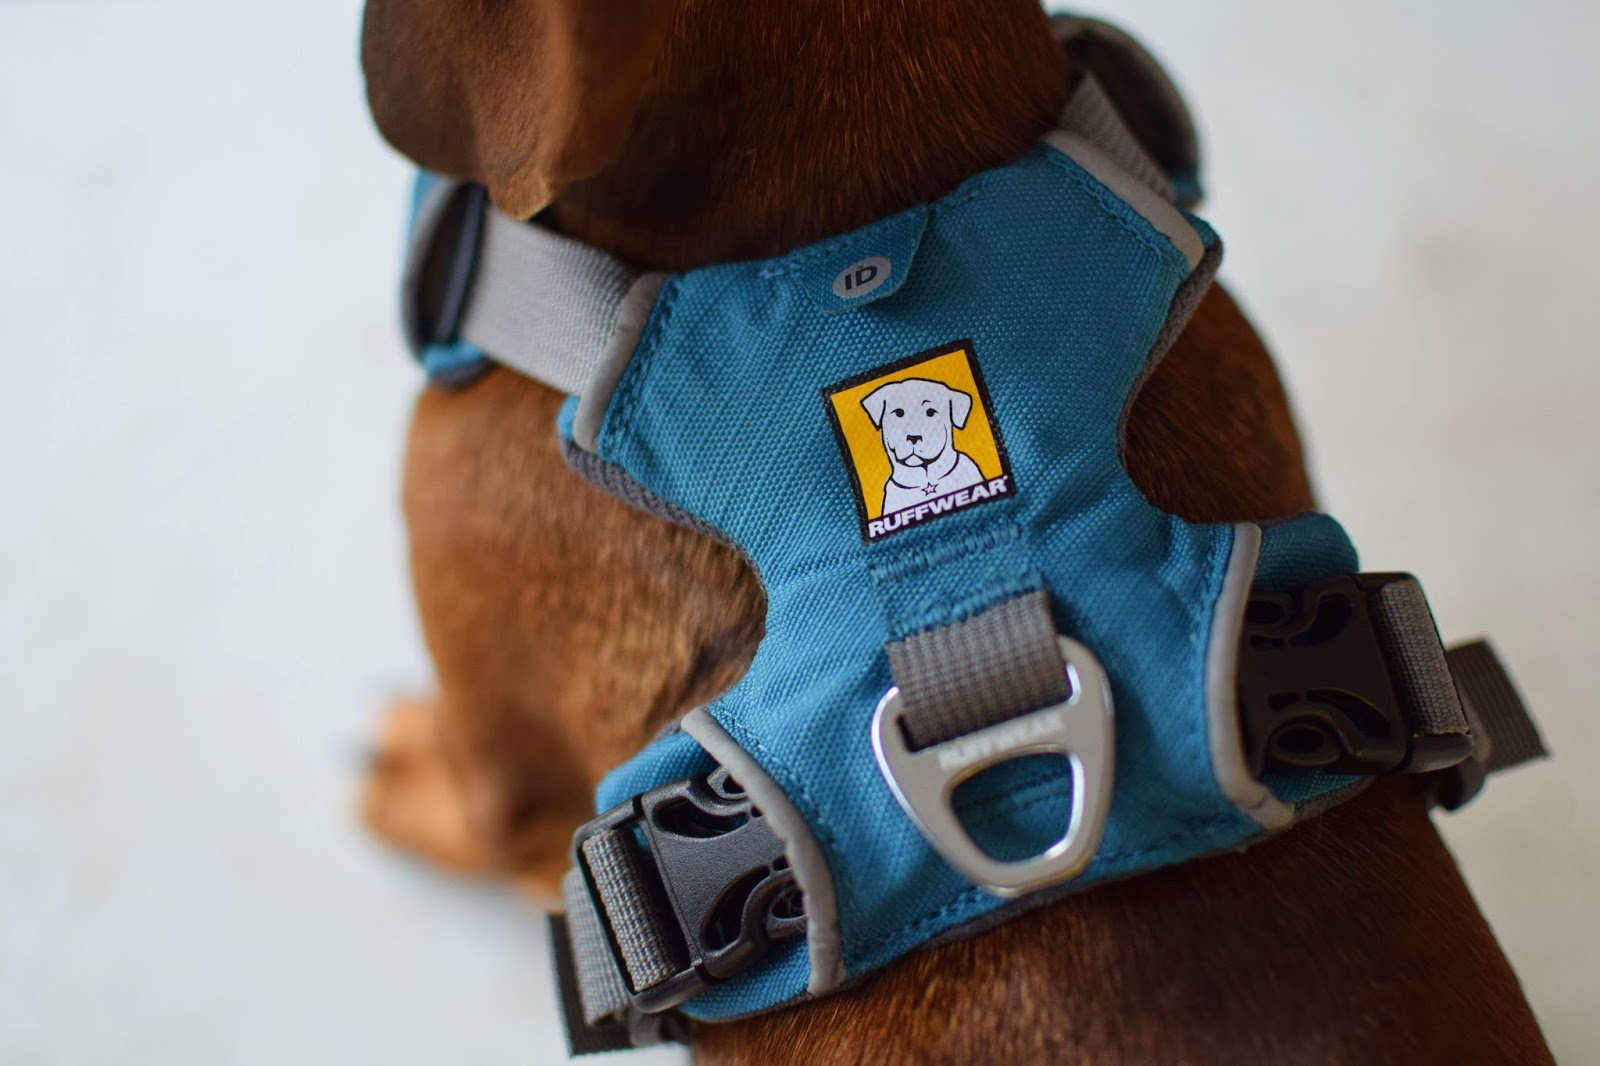 kurgo dog harness instructions